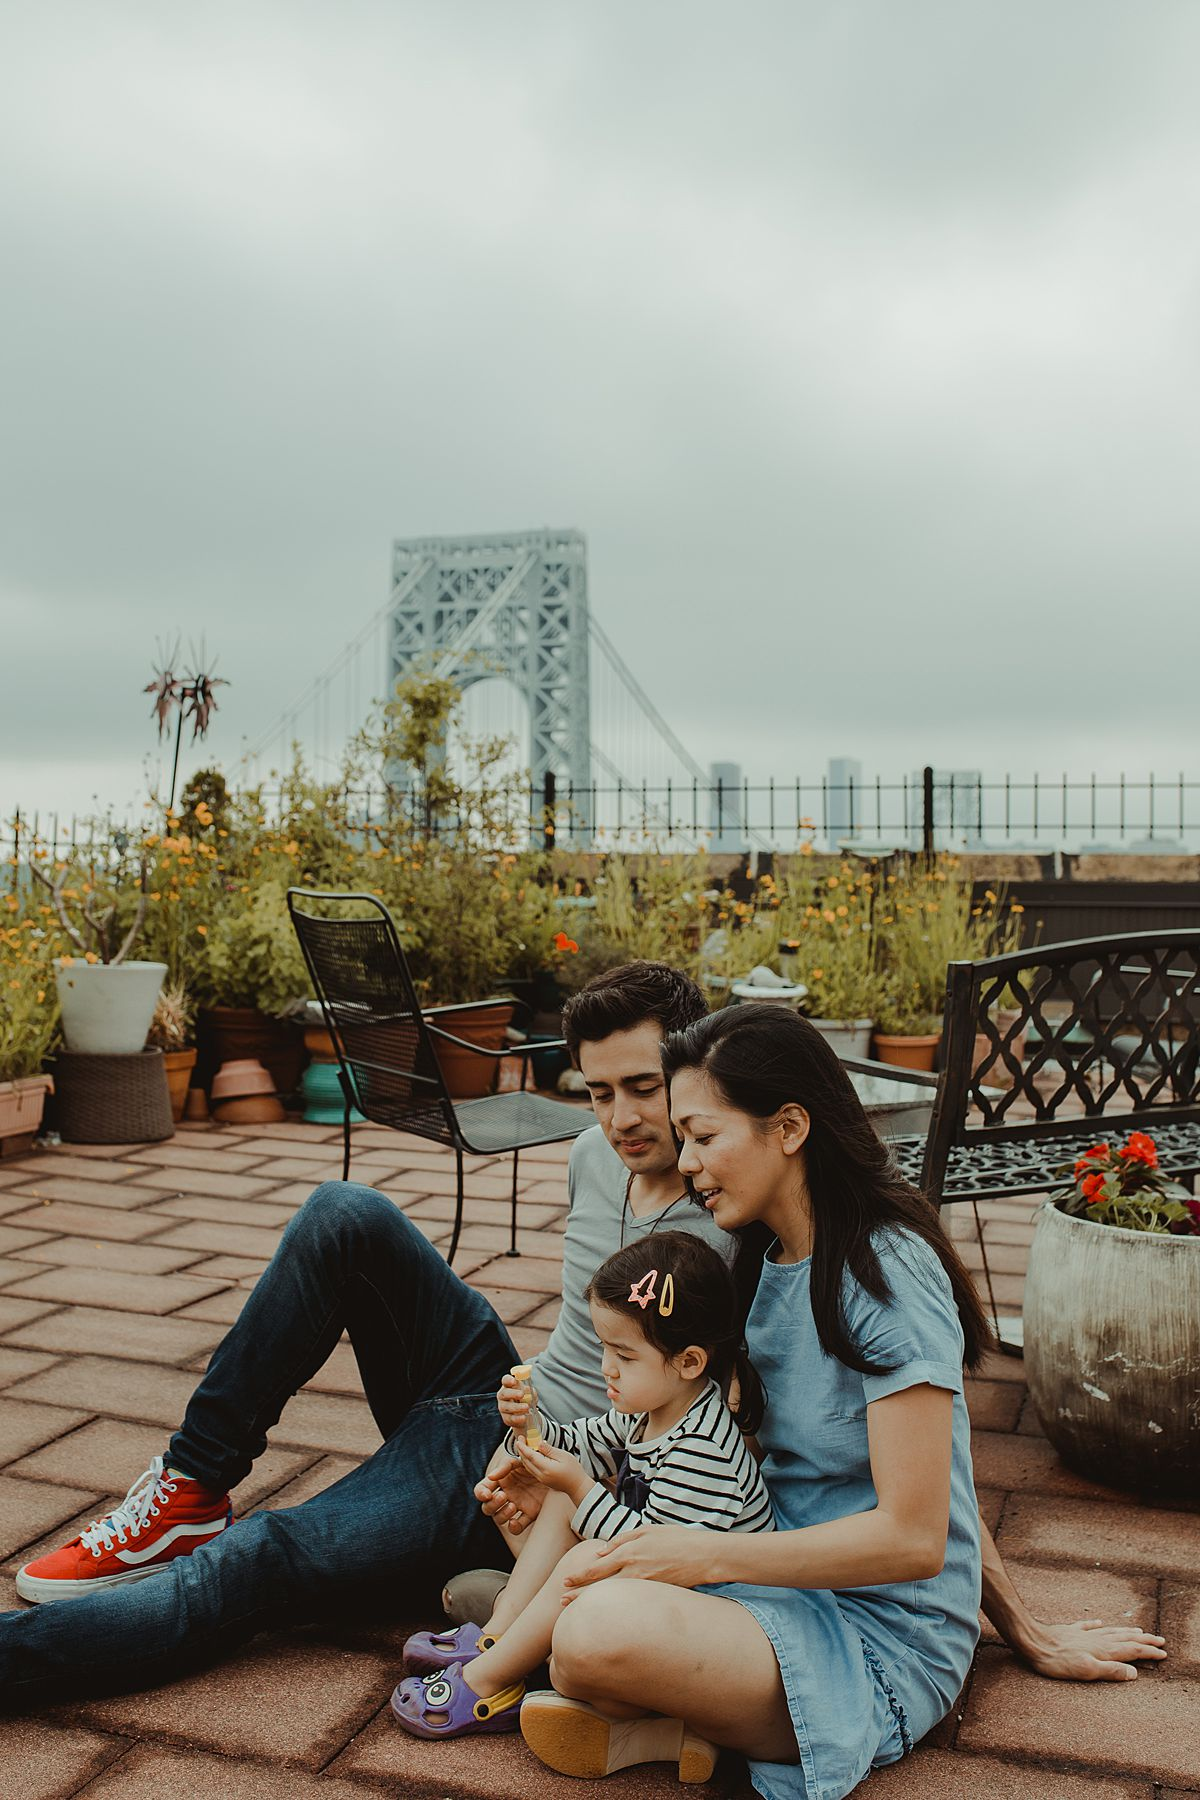 beautiful rooftop photo of a lovely, bubbly energetic family of three